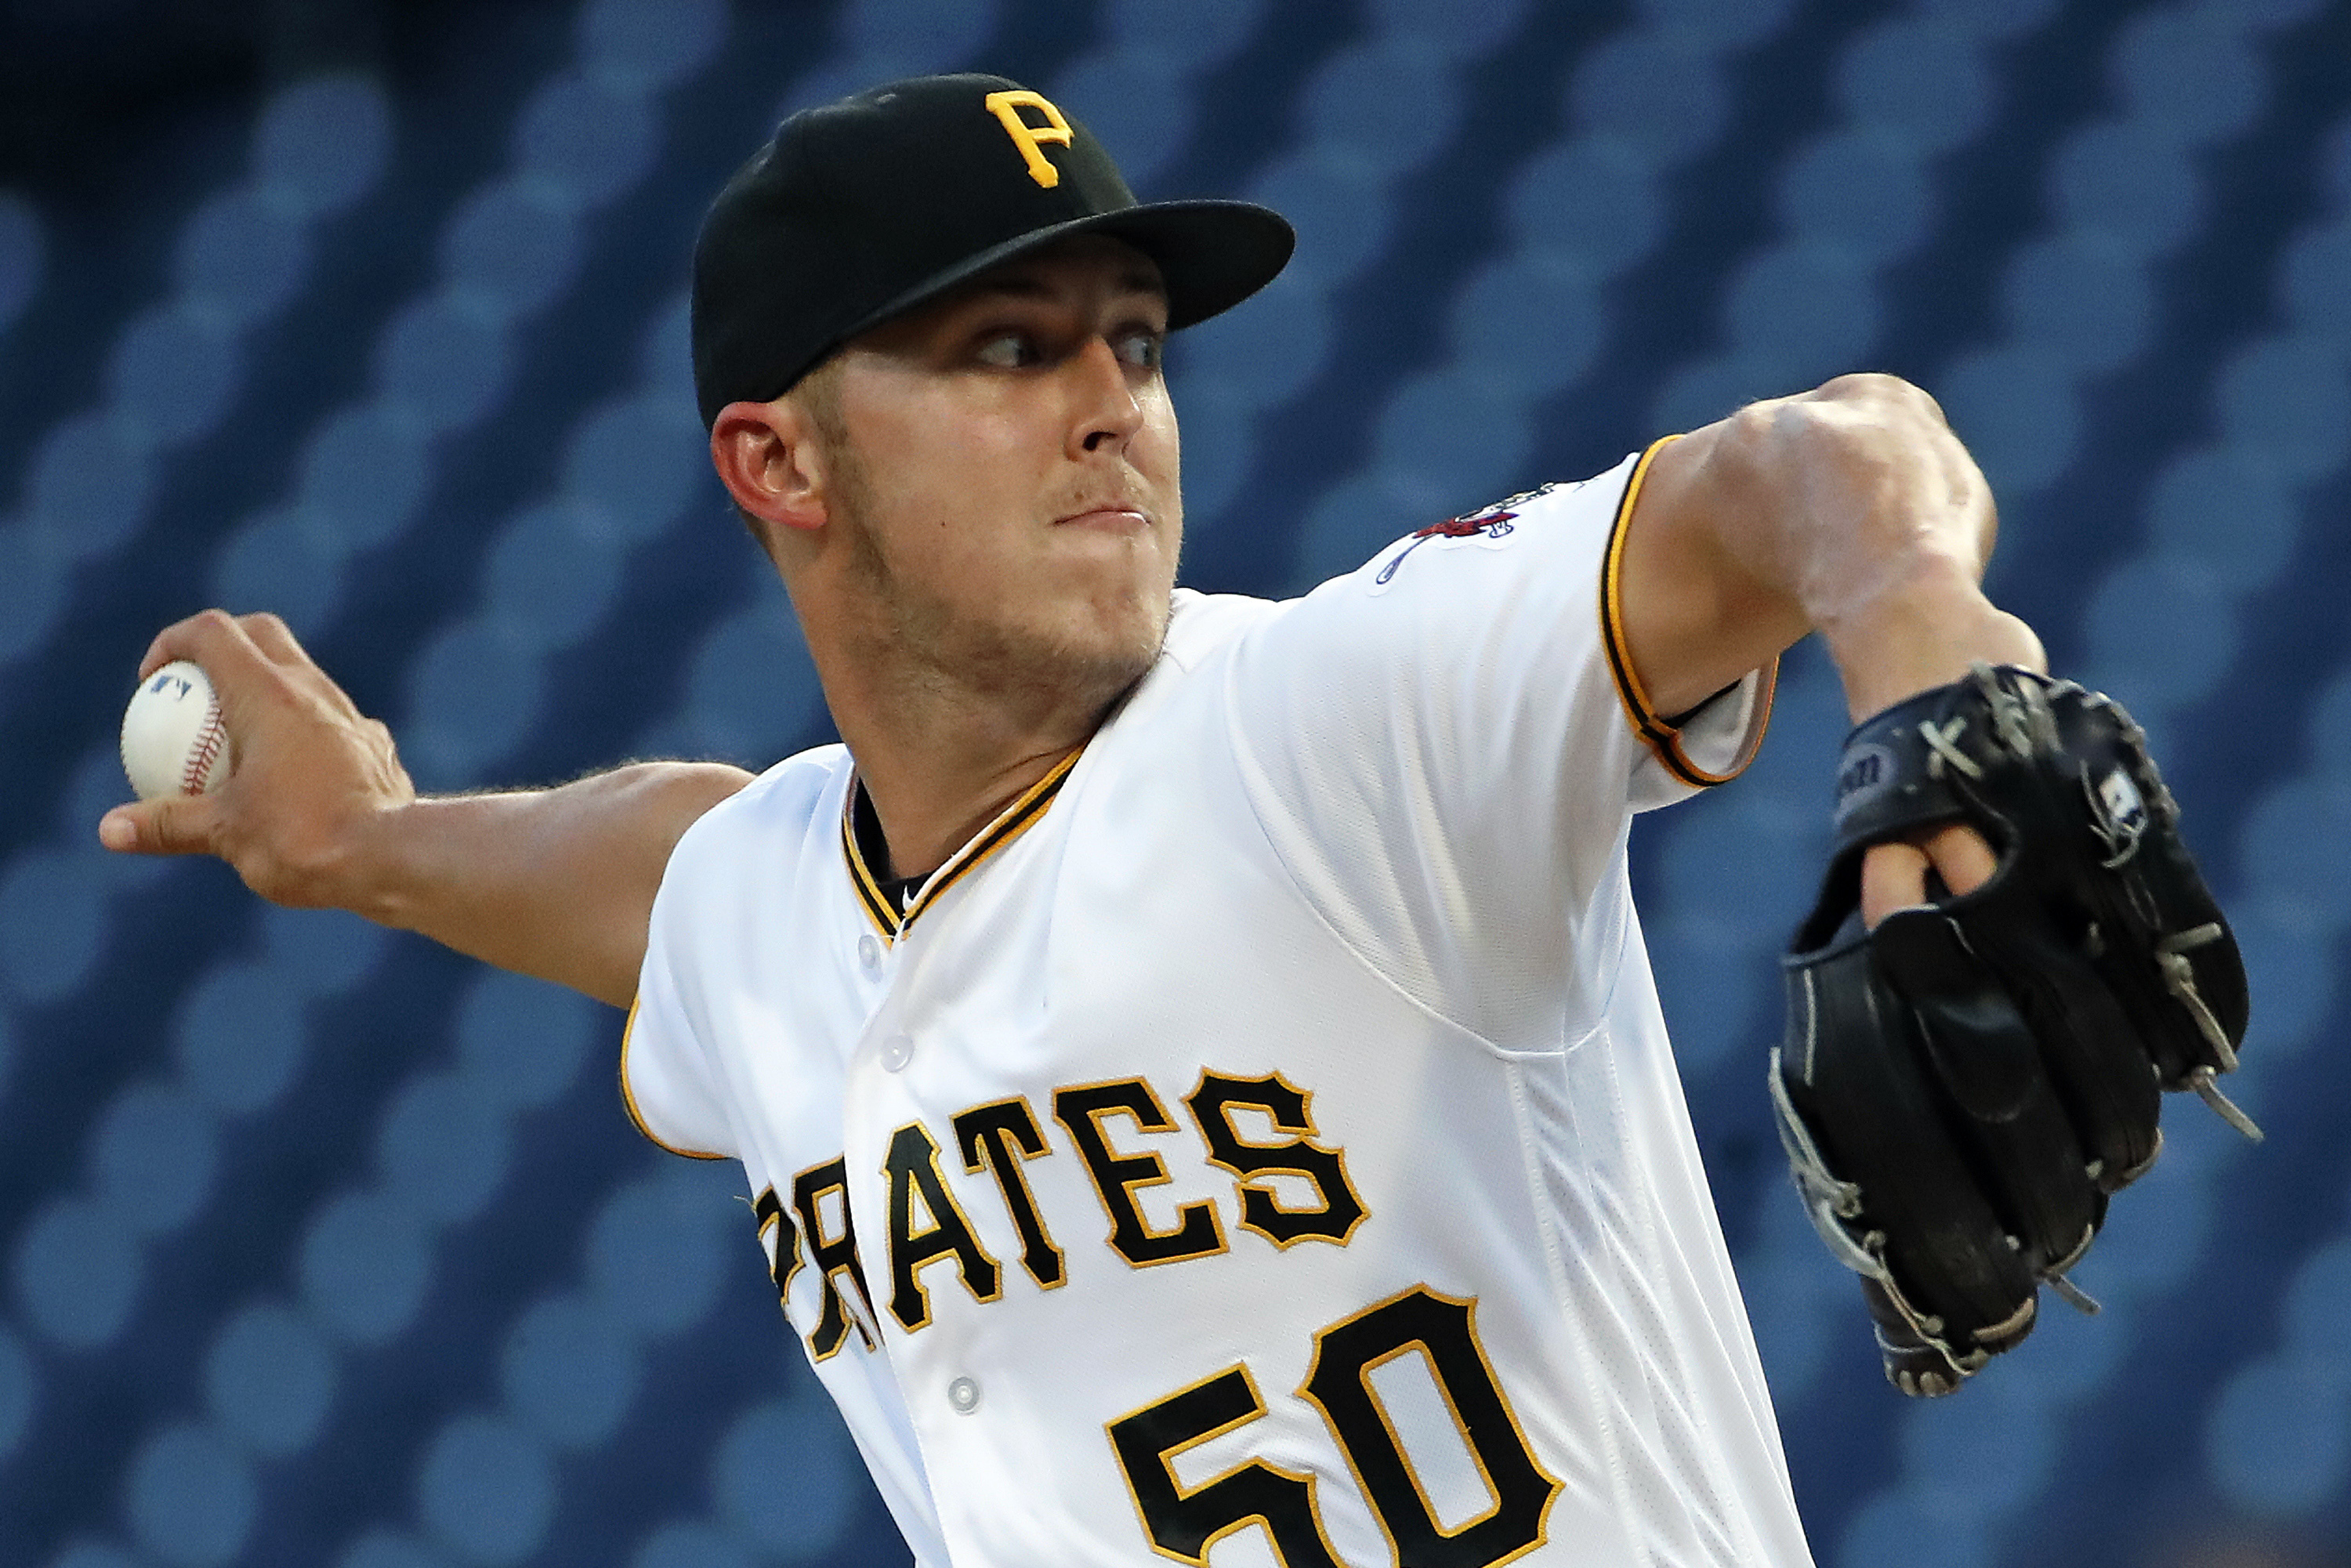 Taillon pitches Pirates past Reds 3-2; Bailey falls to 1-14